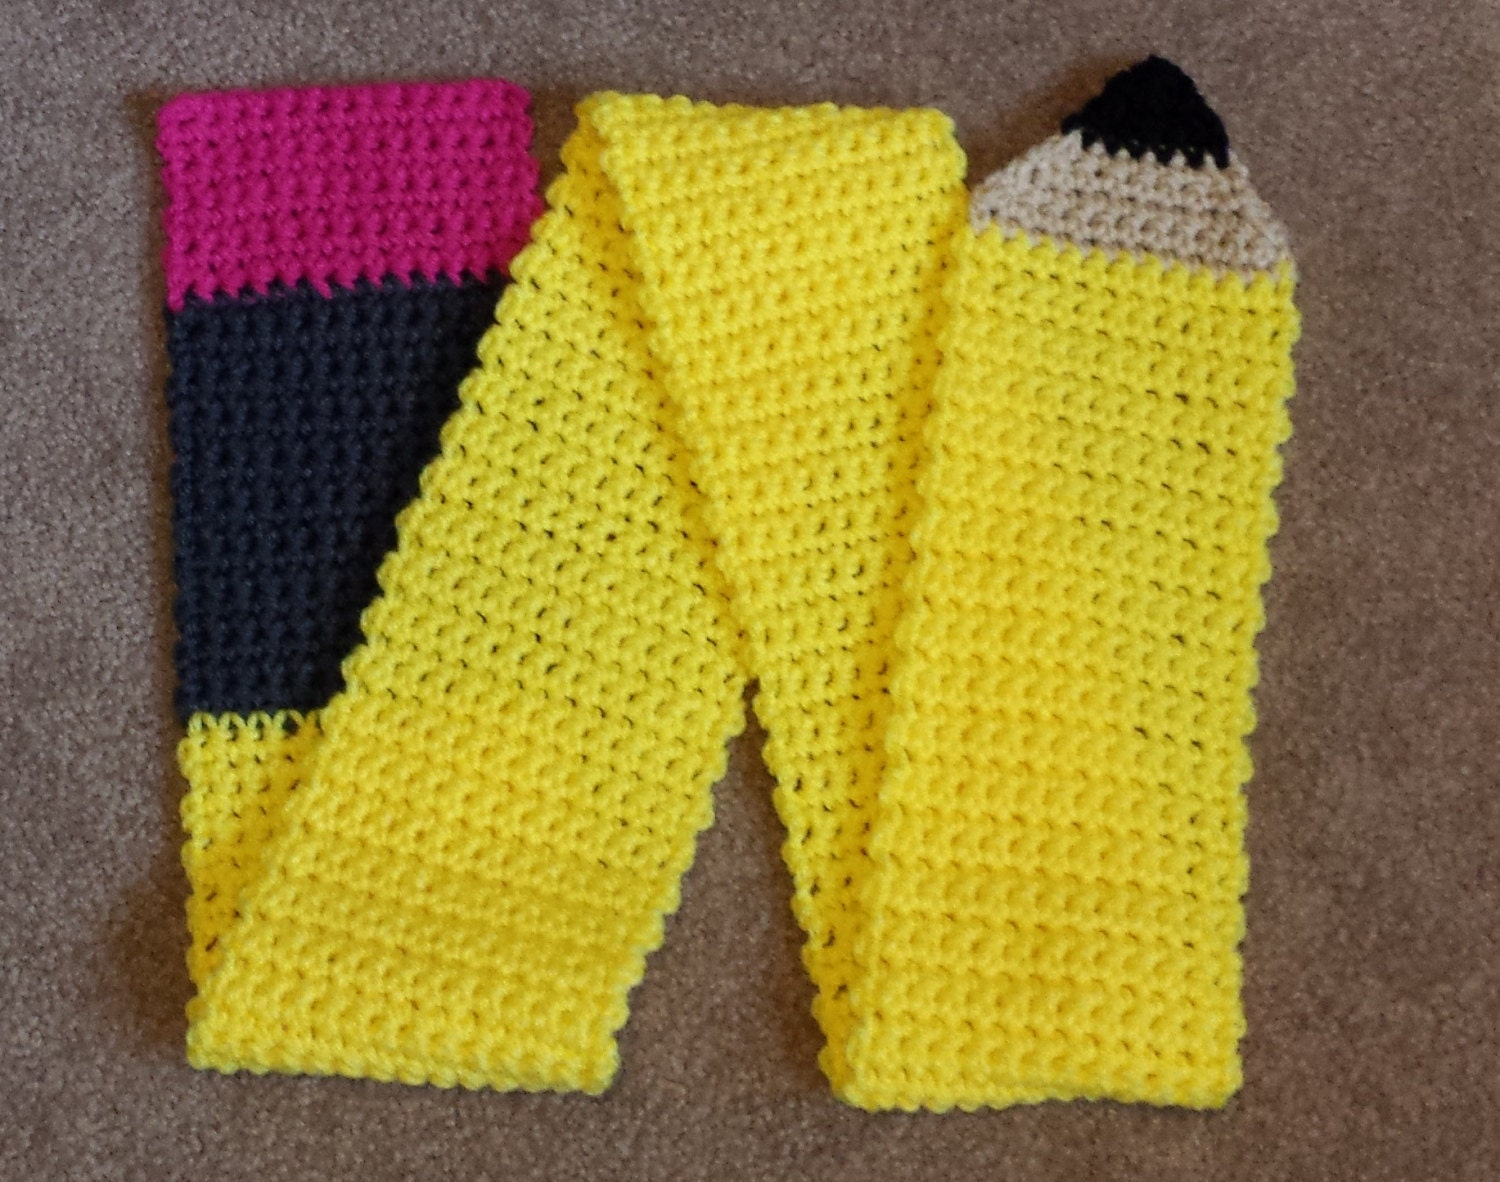 Knitting Pattern For Pencil Scarf : Pencil Scarf Teacher Gift Back to School Crochet